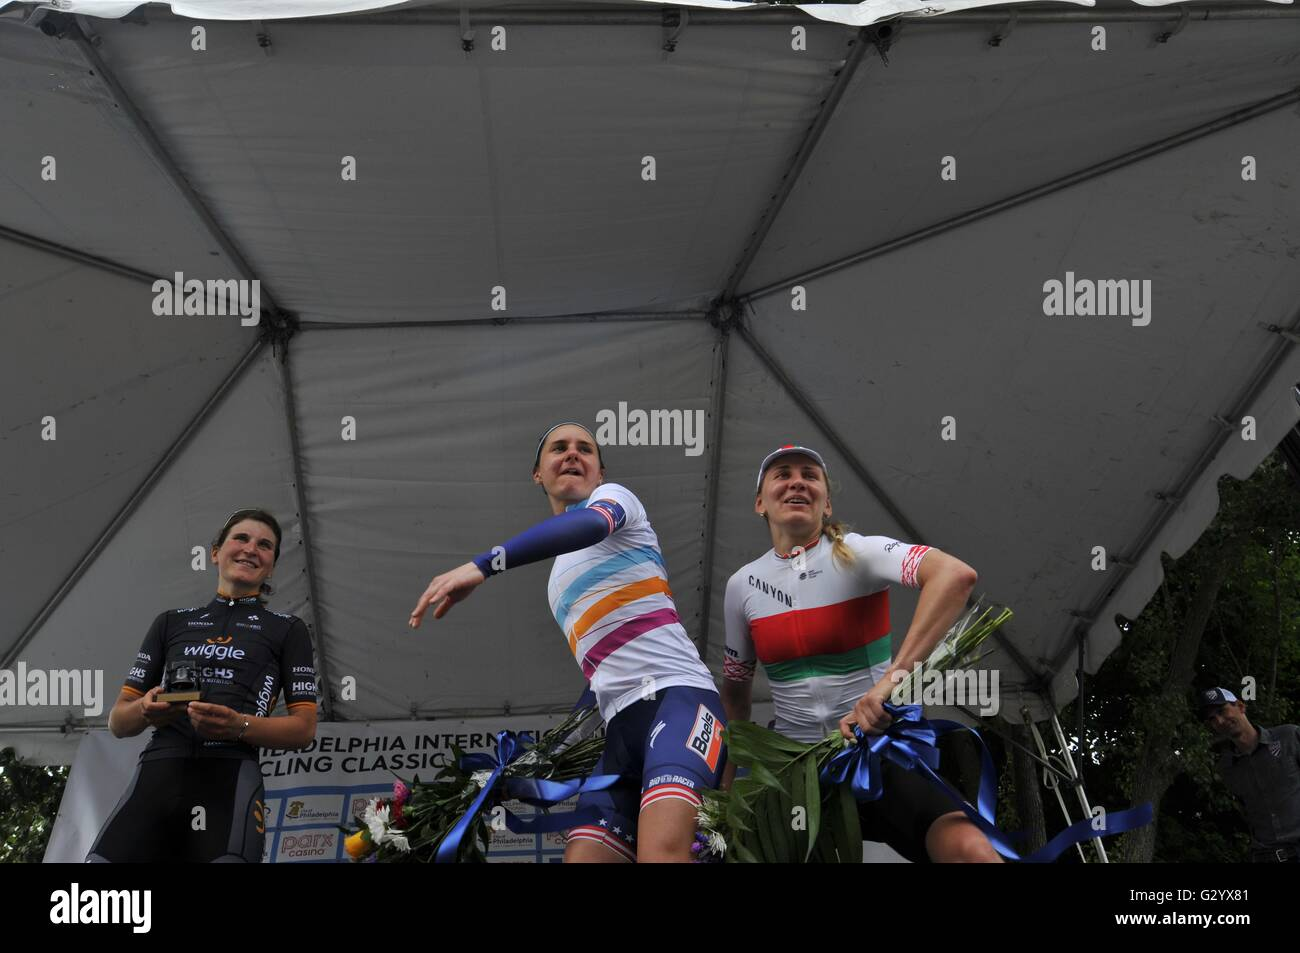 Philadelphia, Pennsylvania, USA. 5th June, 2016. The stage of the June 5th, 2016 UCI Women's World Tour Philadelphia Stock Photo